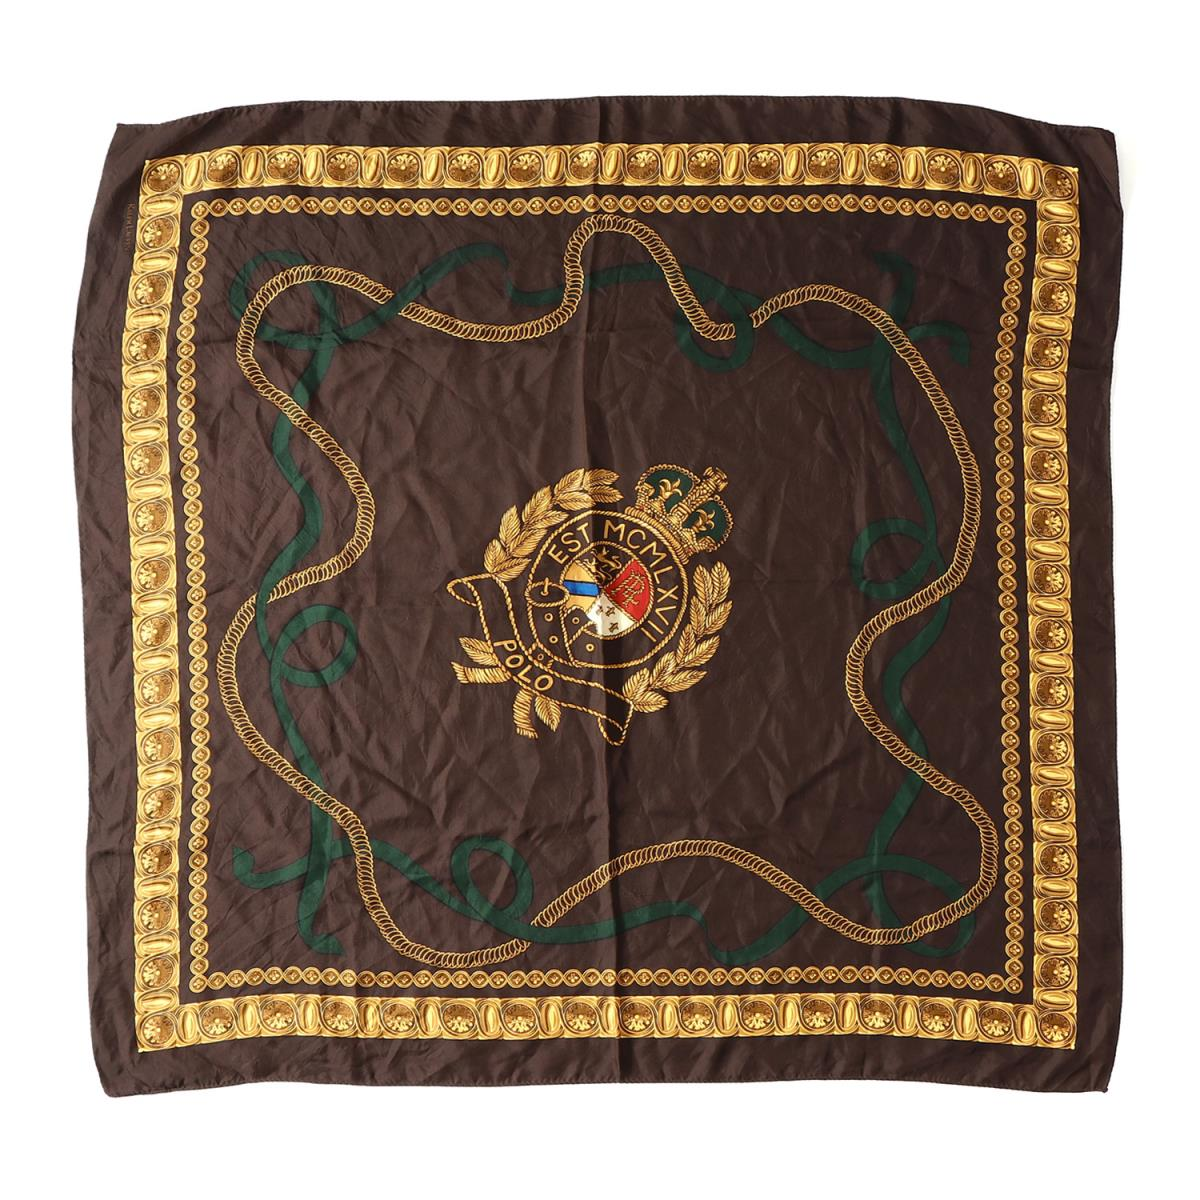 b379d6977adbd POLO by Ralph Lauren (polo by Ralph Lauren) 90 S vintage emblem   jewels  and ornaments pattern silk scarf brown